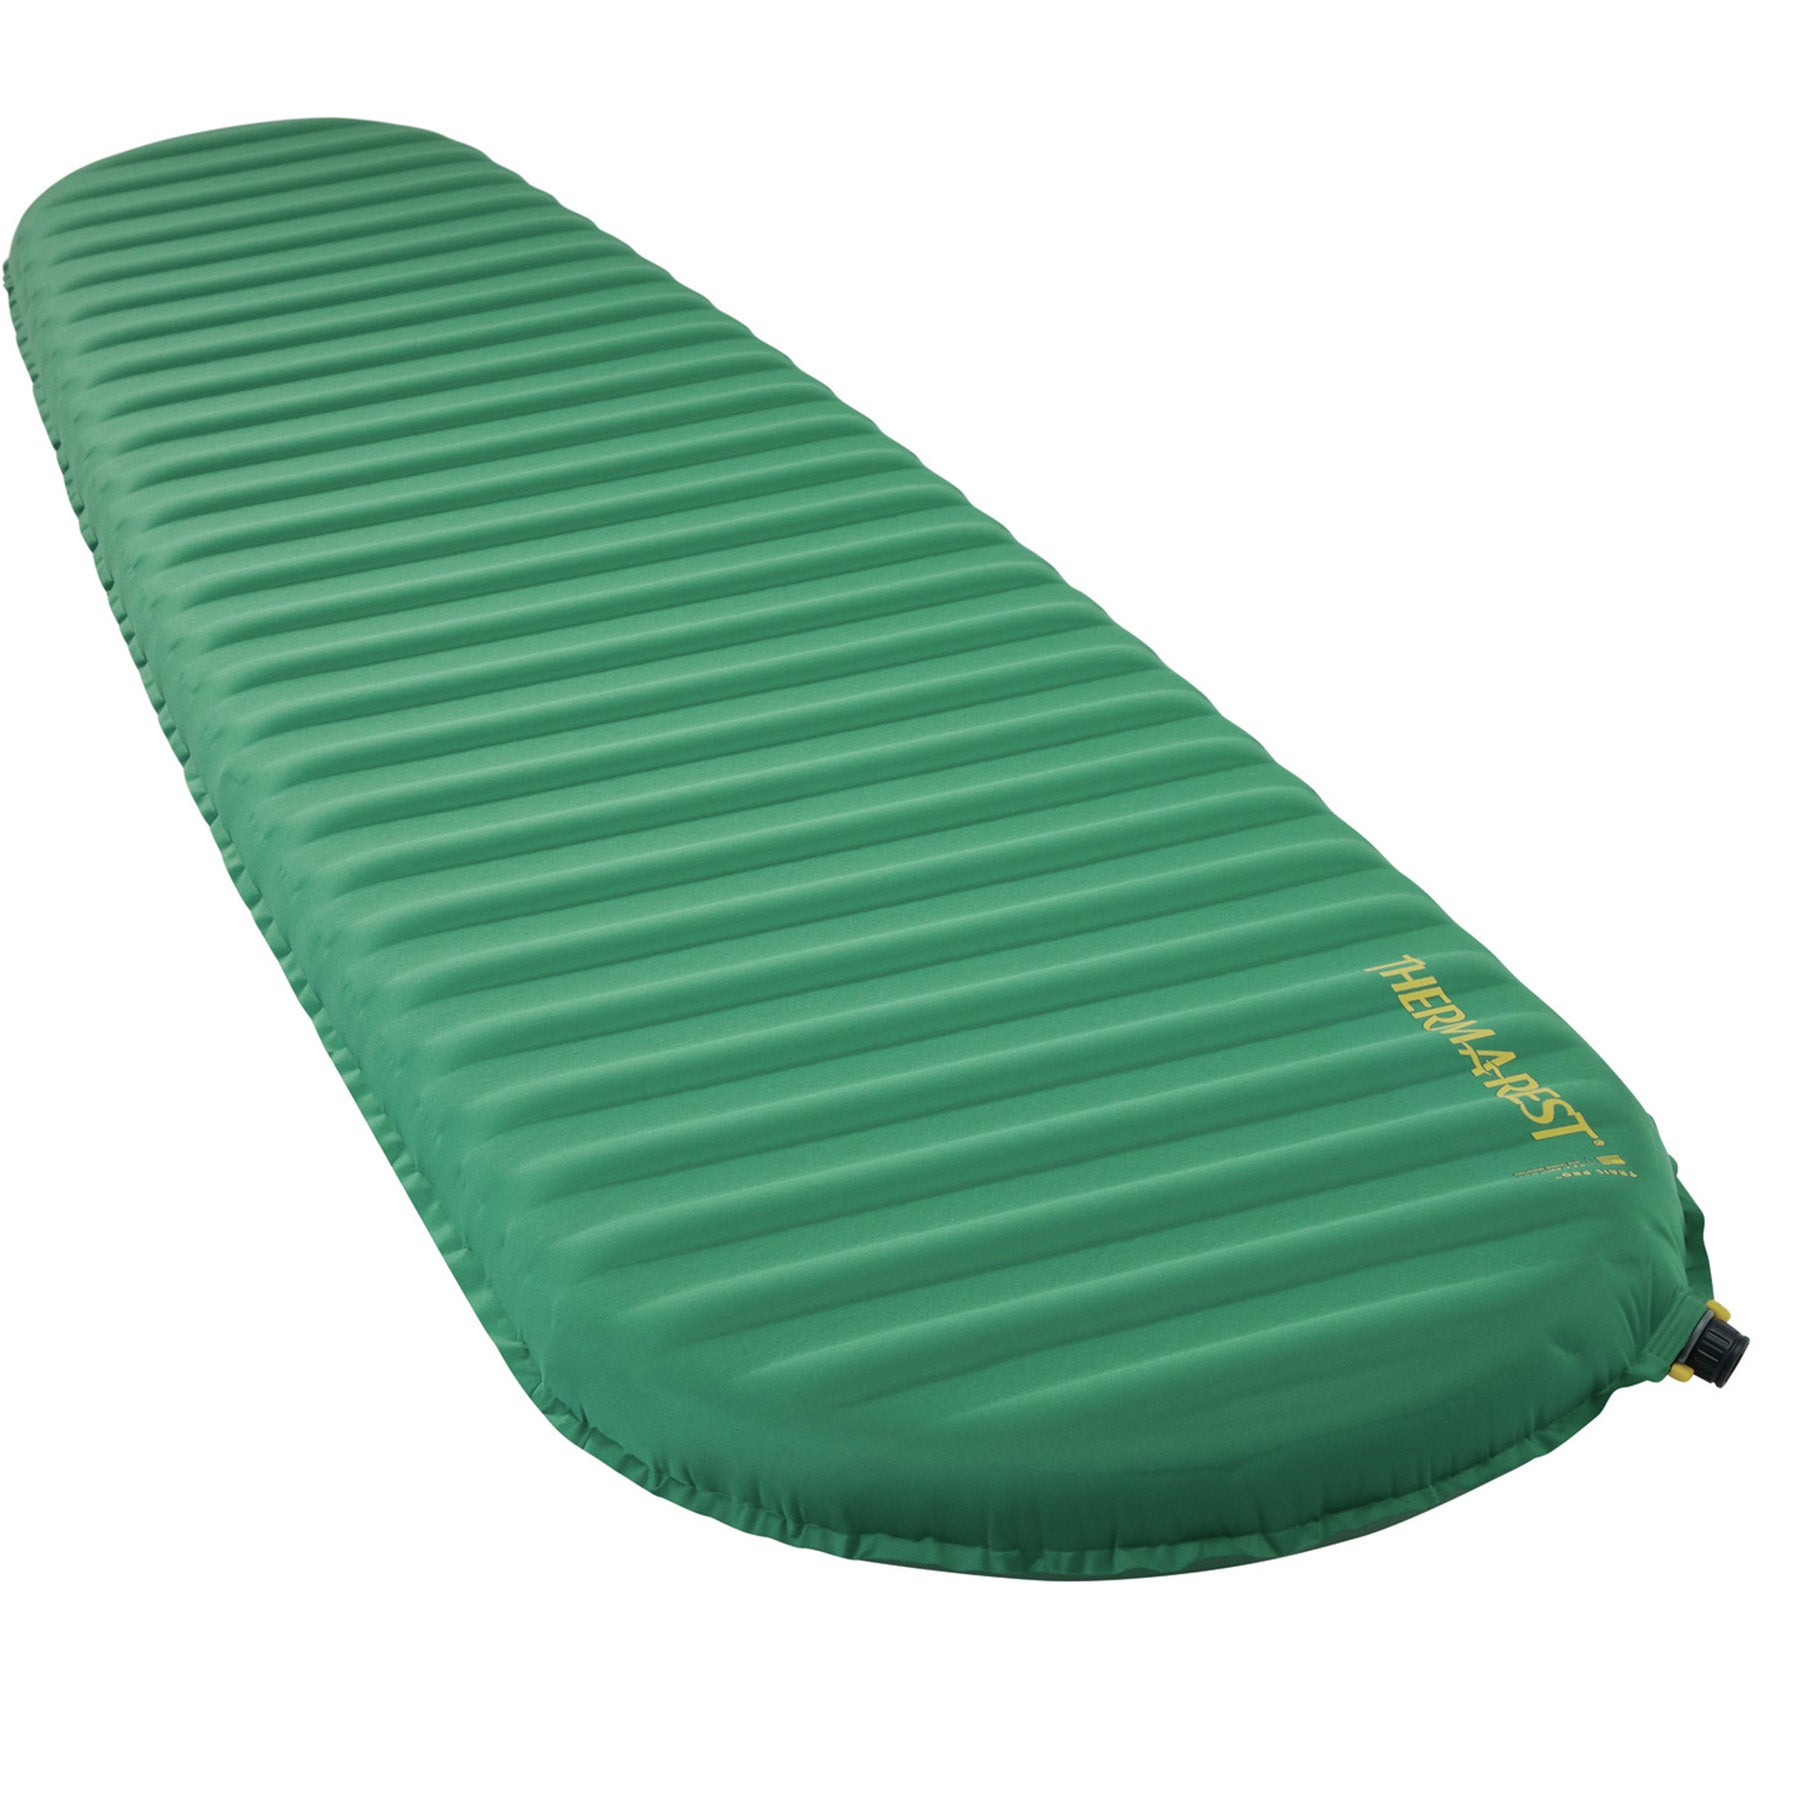 trail pro in pine, regular, inflated